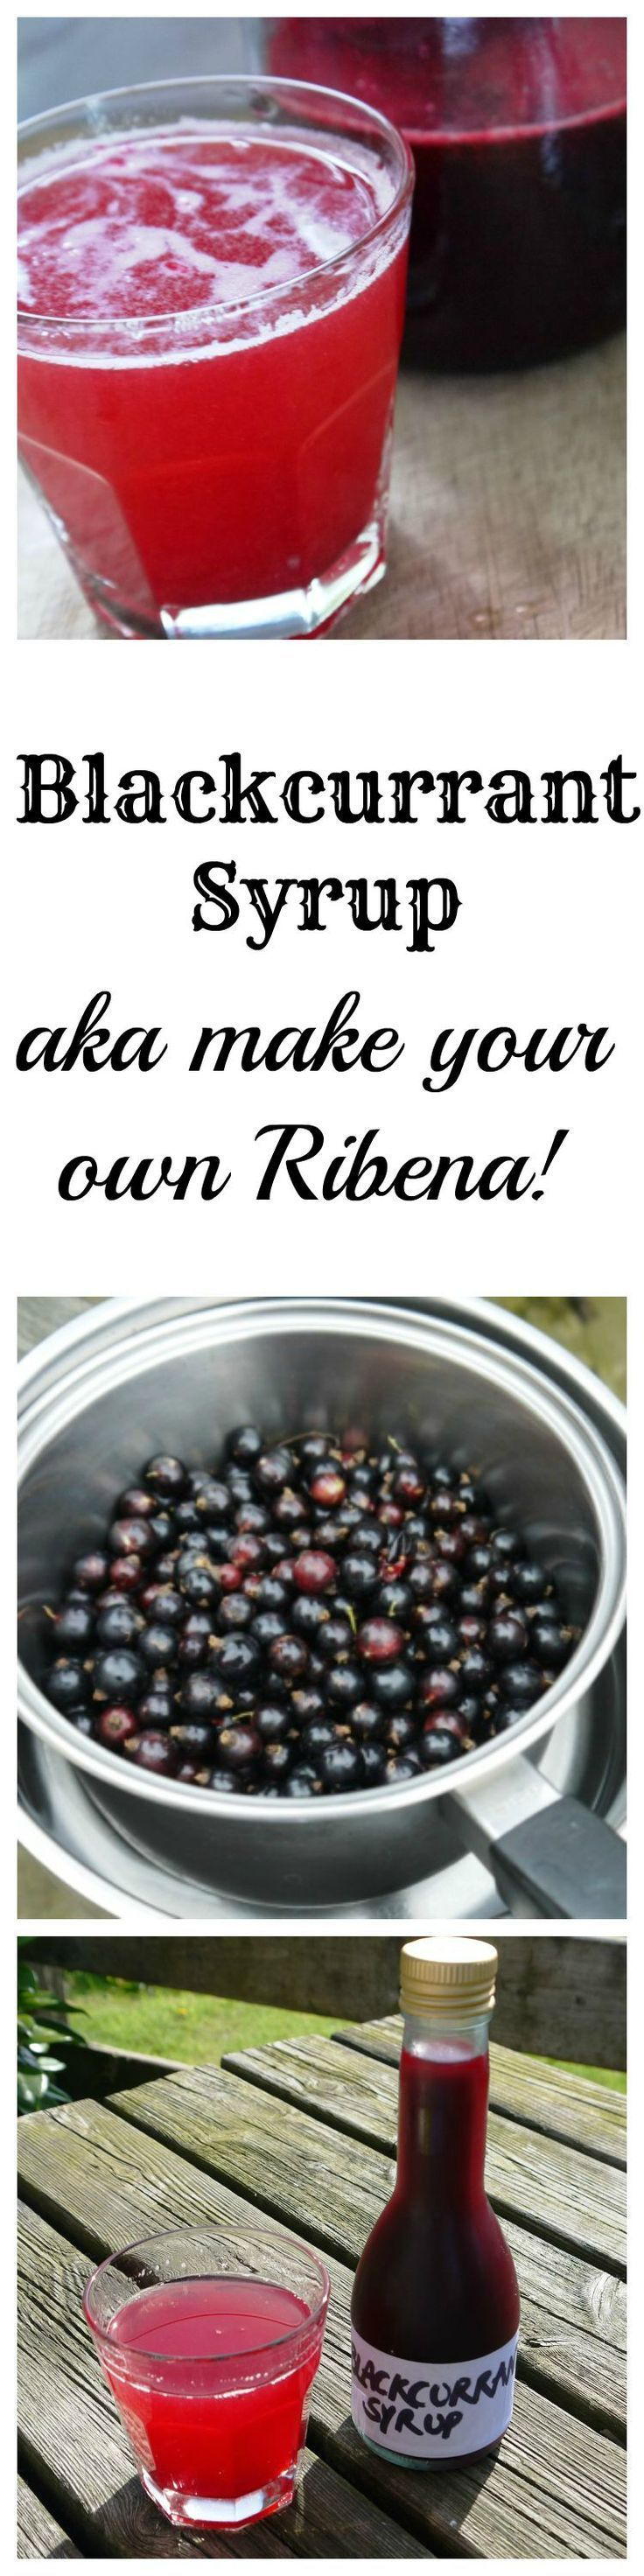 Make your own Ribena from fresh blackcurrants | The Hedgecombers